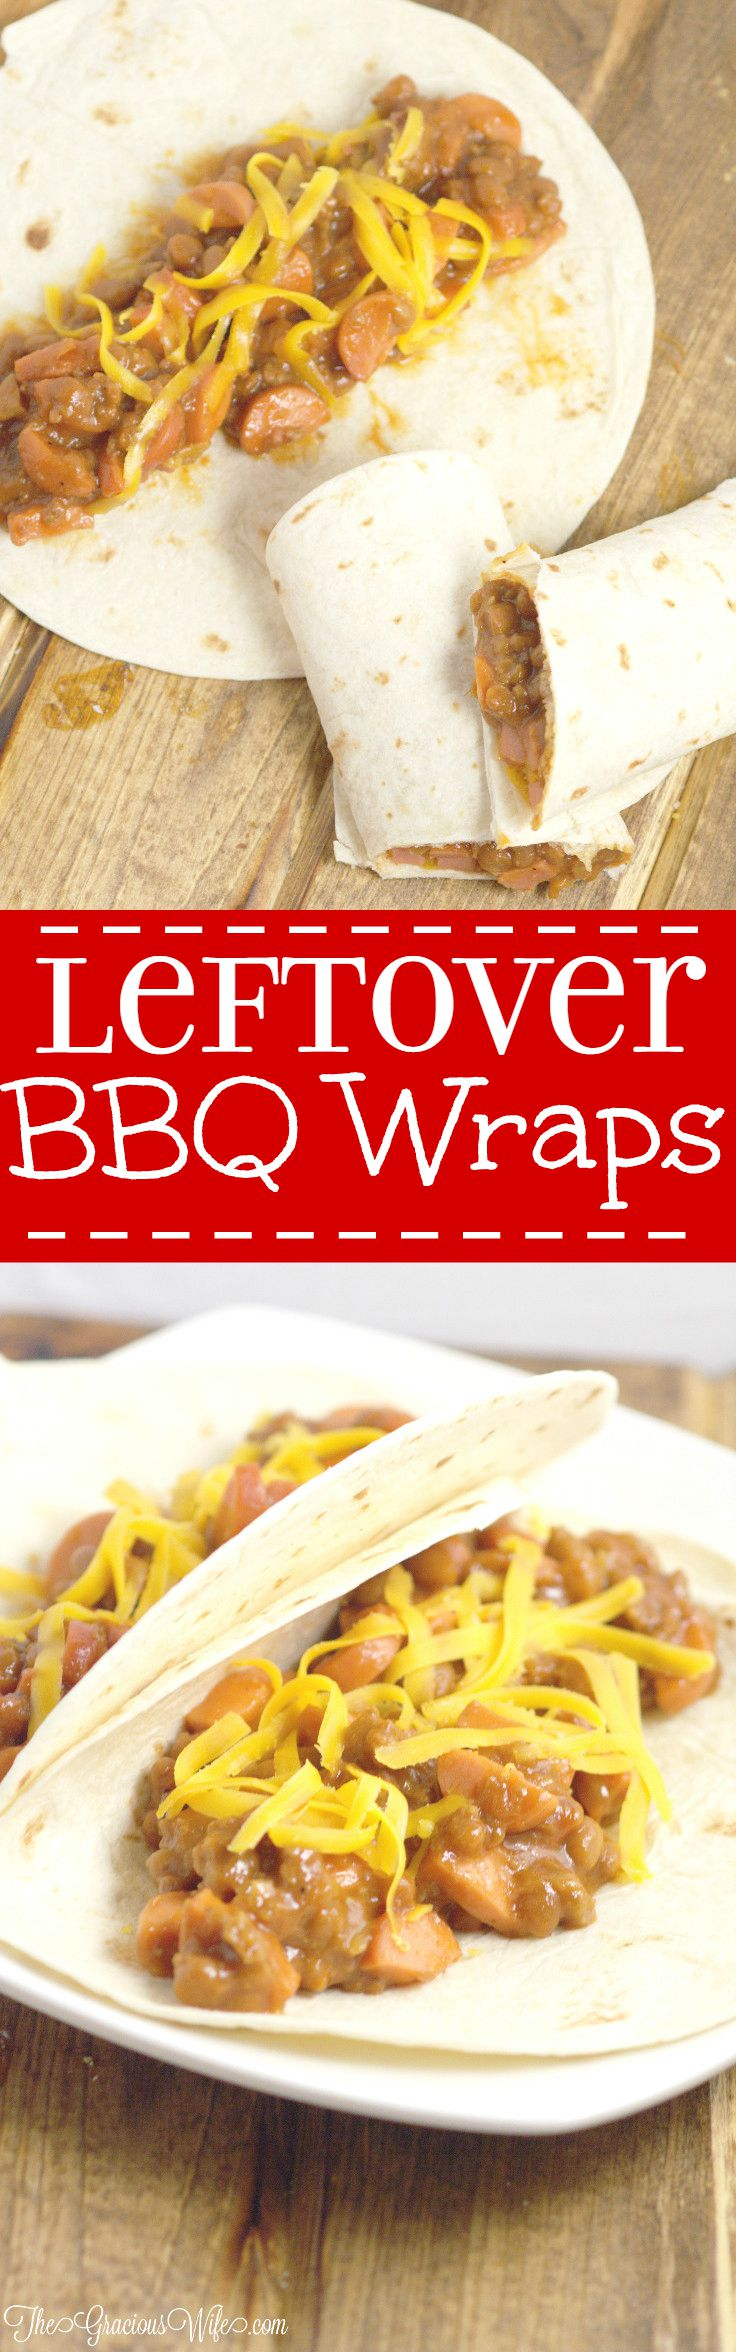 These Chuckwagon Leftover BBQ Wraps are a quick and easy family dinner recipe that uses up your leftovers from a BBQ or cookout. They're so tasty and super easy! My kids love them (and I do too!)